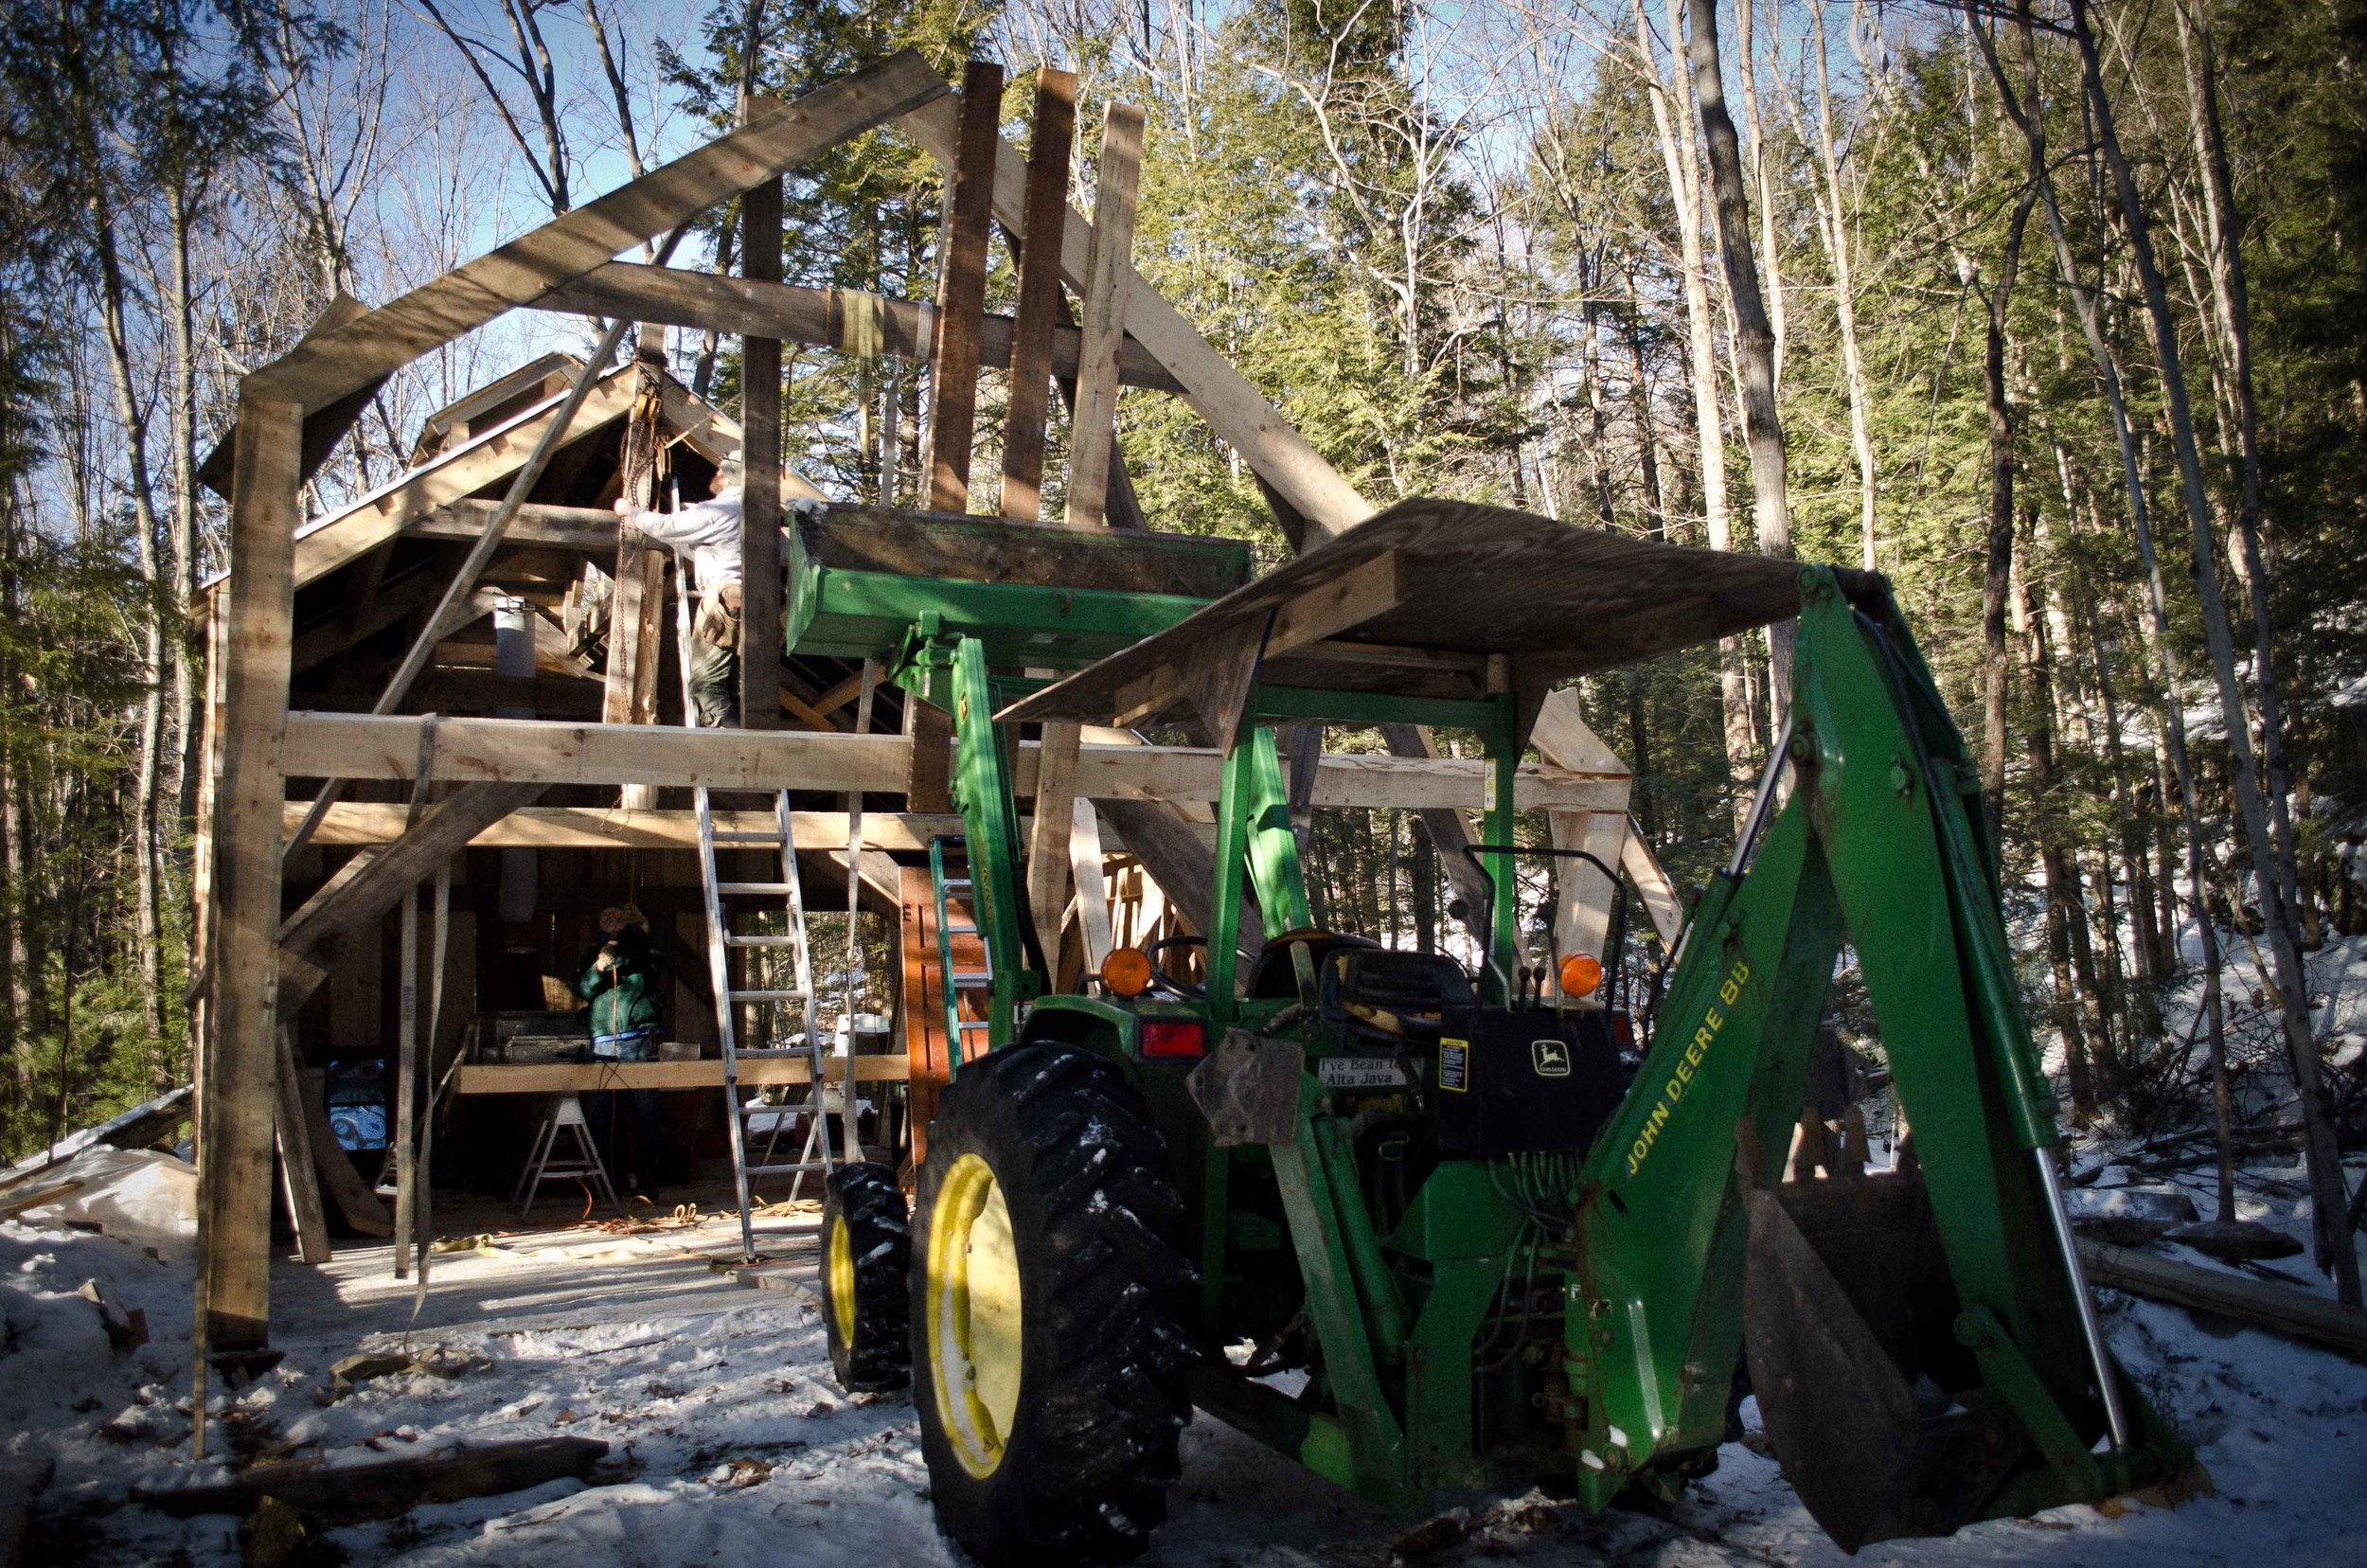 Timber Frame, Sugar Shack, John Deere Tractor, Bolton Landing, Bixby's Best, Maple Syrup